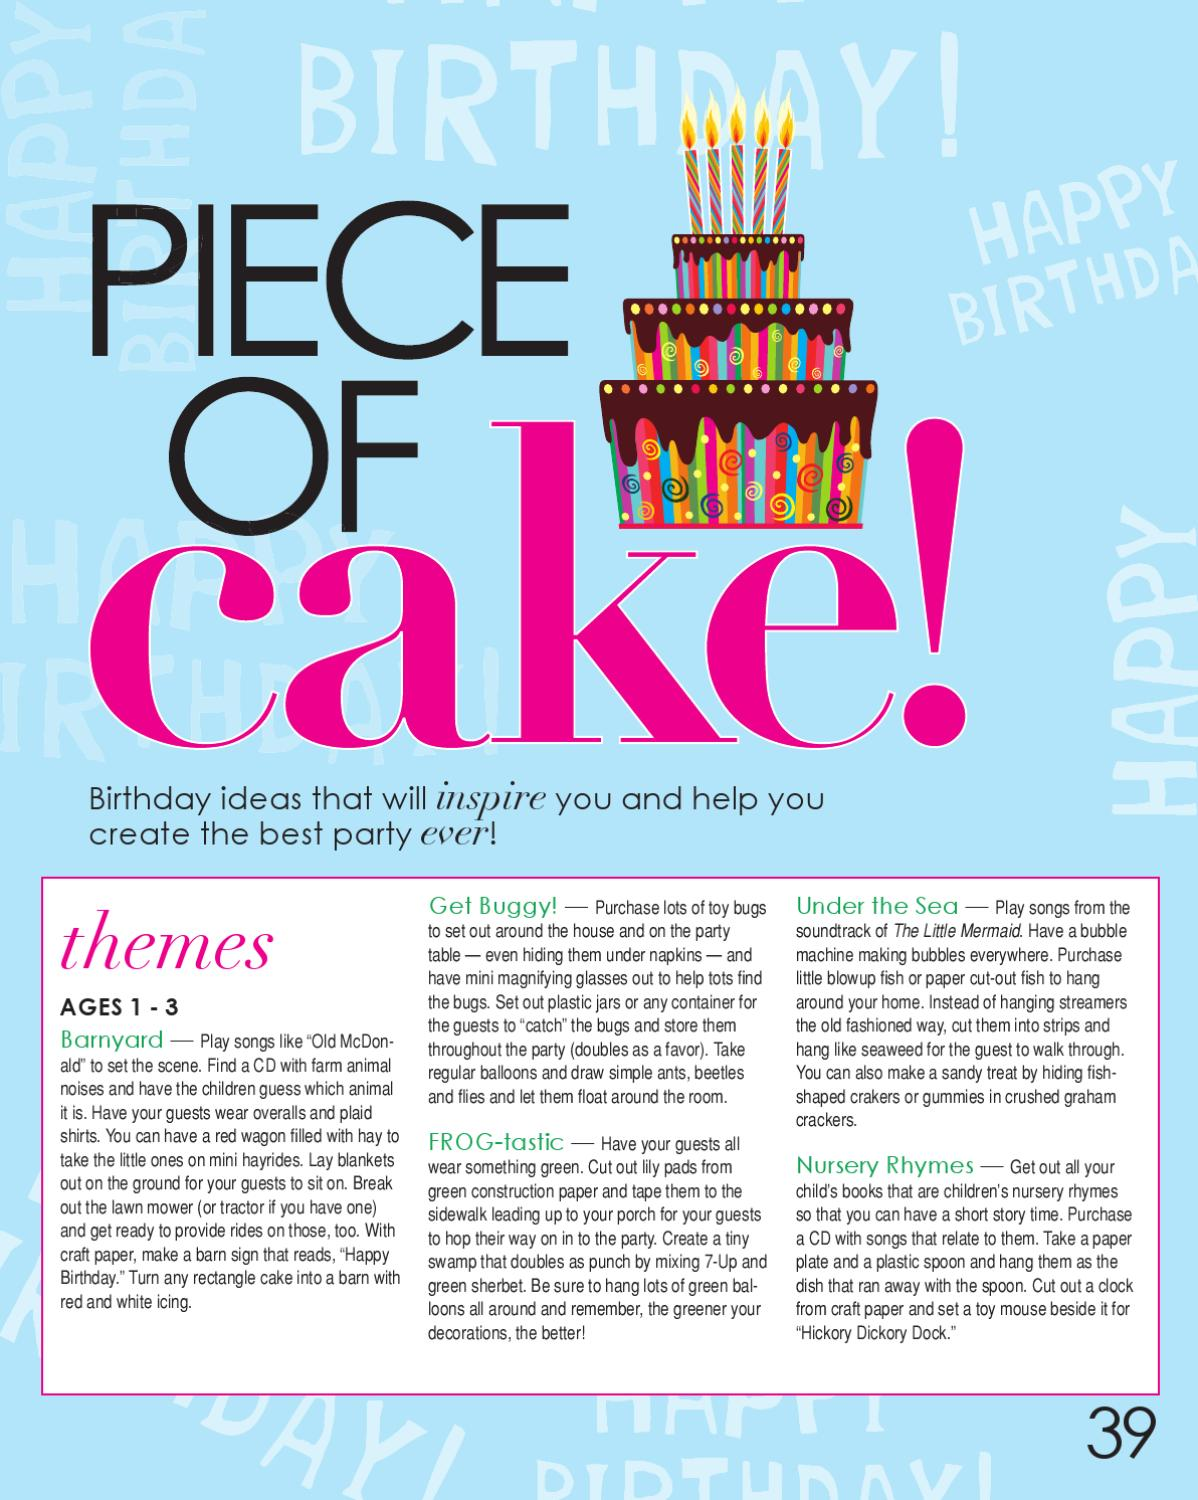 Sumner Parent Magazine - May 2011 by Day Communications